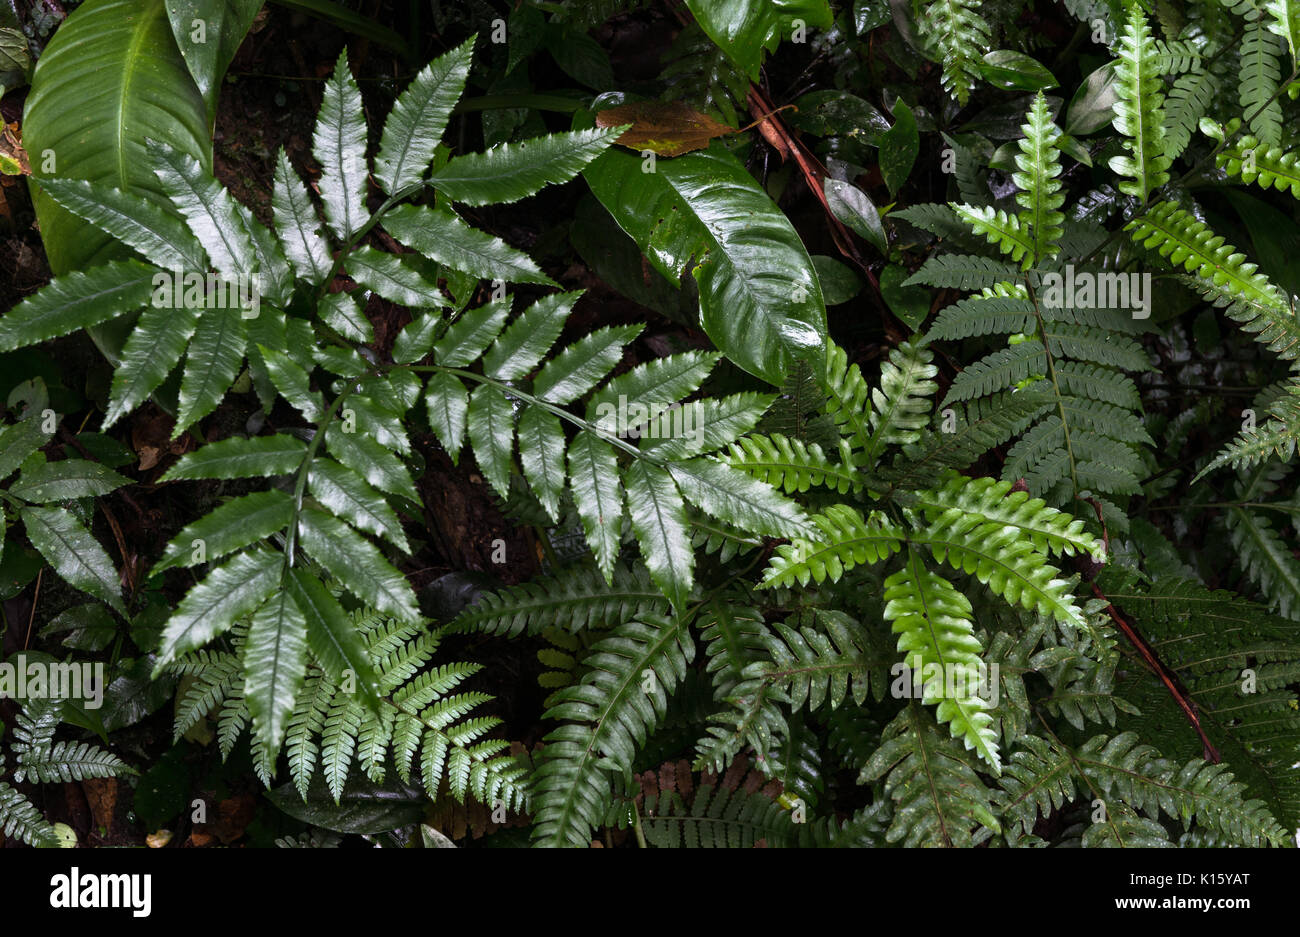 Varied ferns growing on the undergrowth of the Atlantic Rainforest - Stock Image